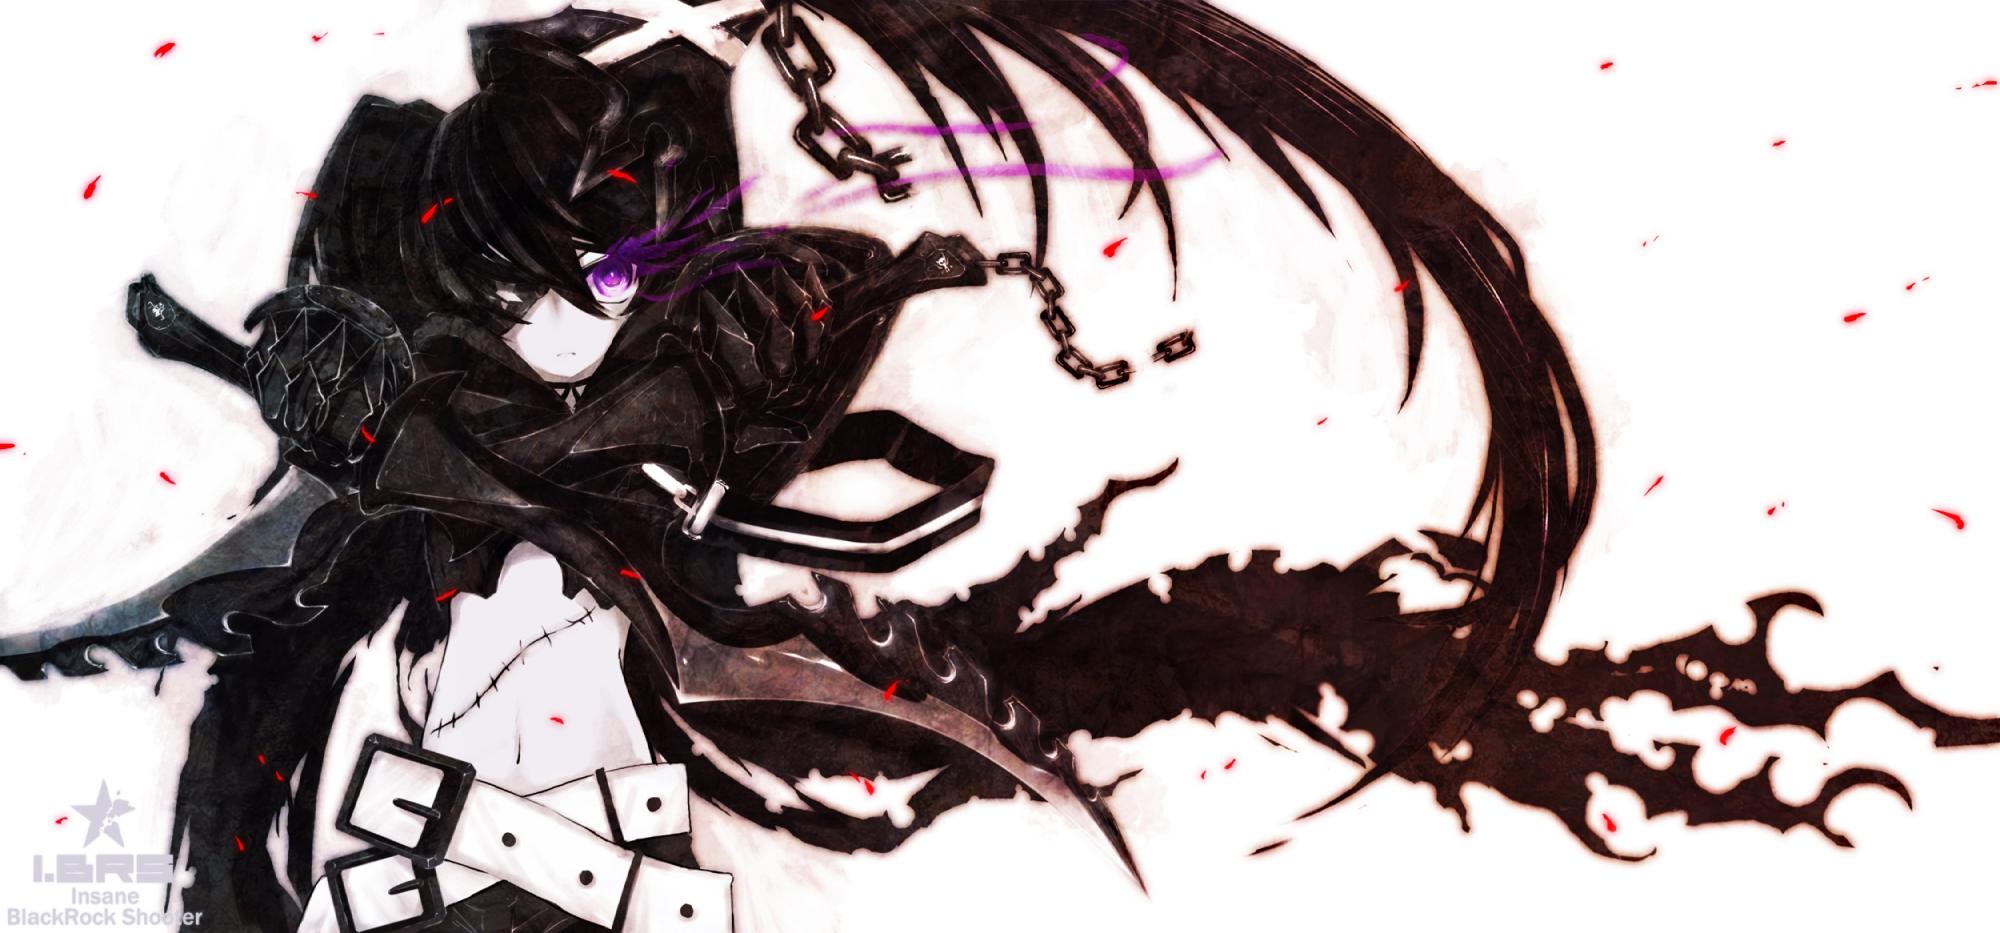 armor auer black_hair black_rock_shooter chain eyepatch fire huke insane_black_rock_shooter long_hair purple_eyes scar sword twintails weapon